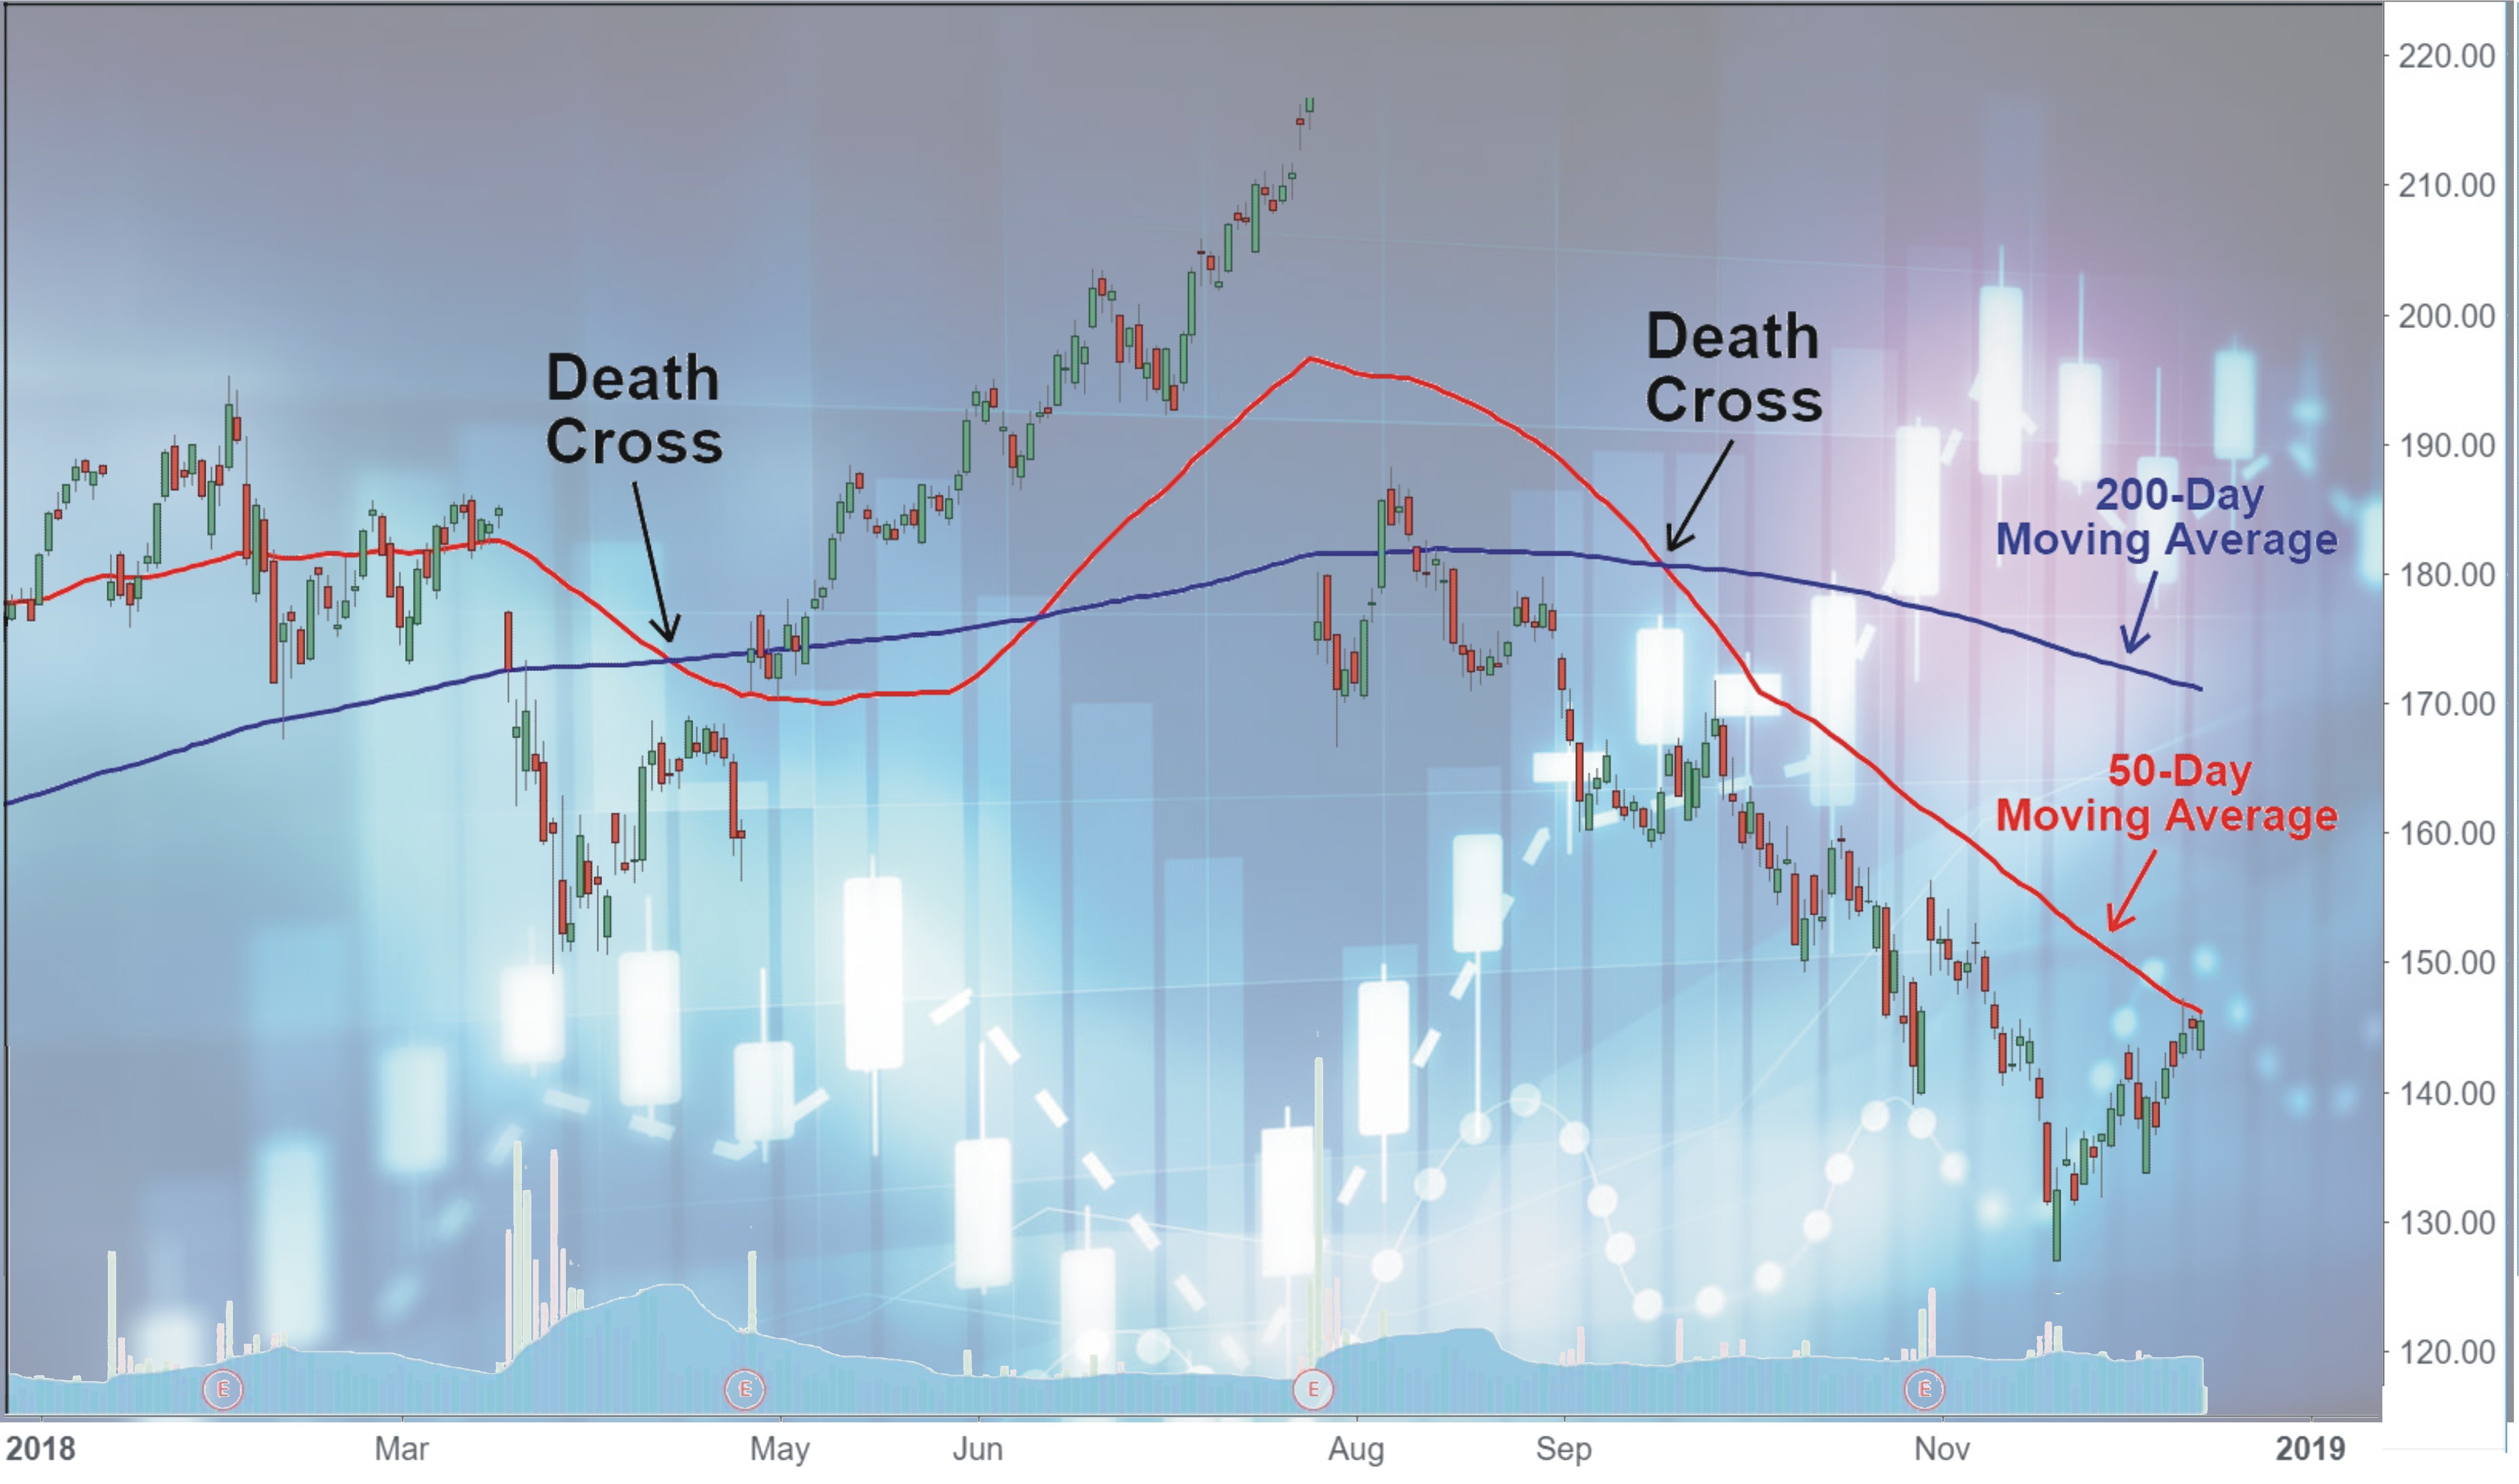 Deathcross in trading